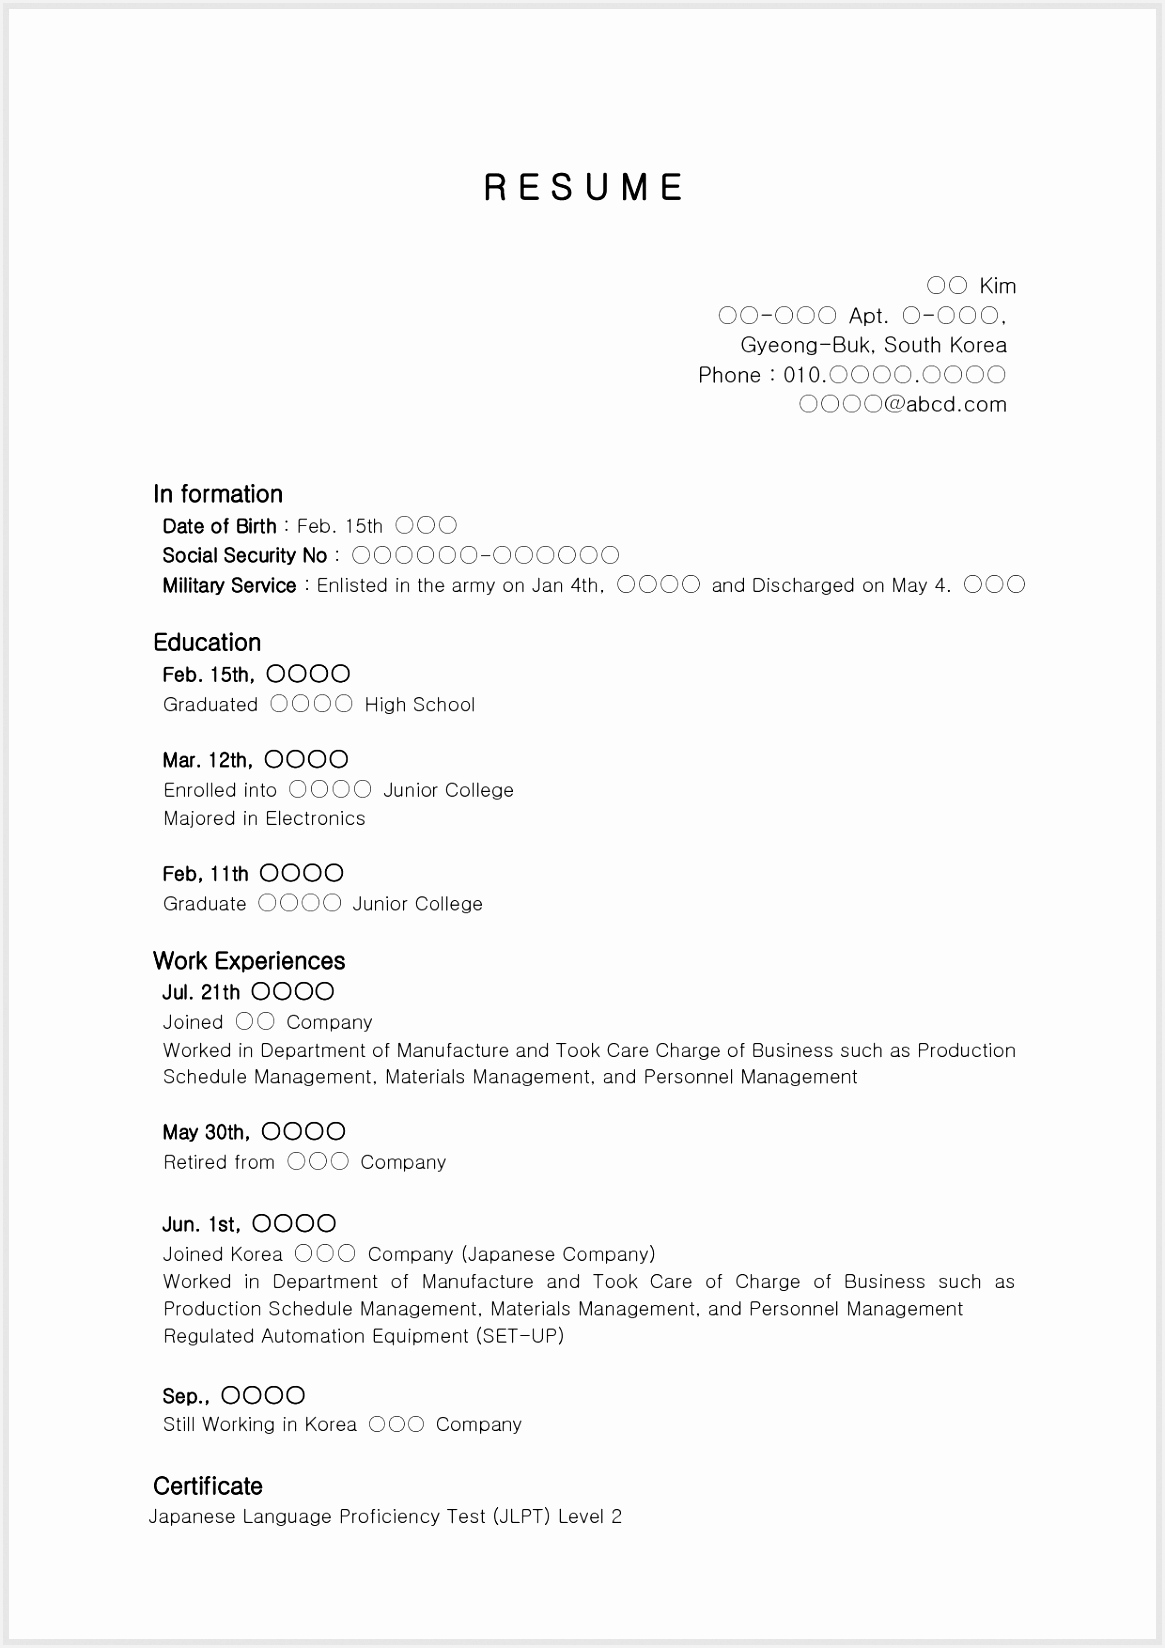 Sample Resume For High School Student With No 16481165jtdka